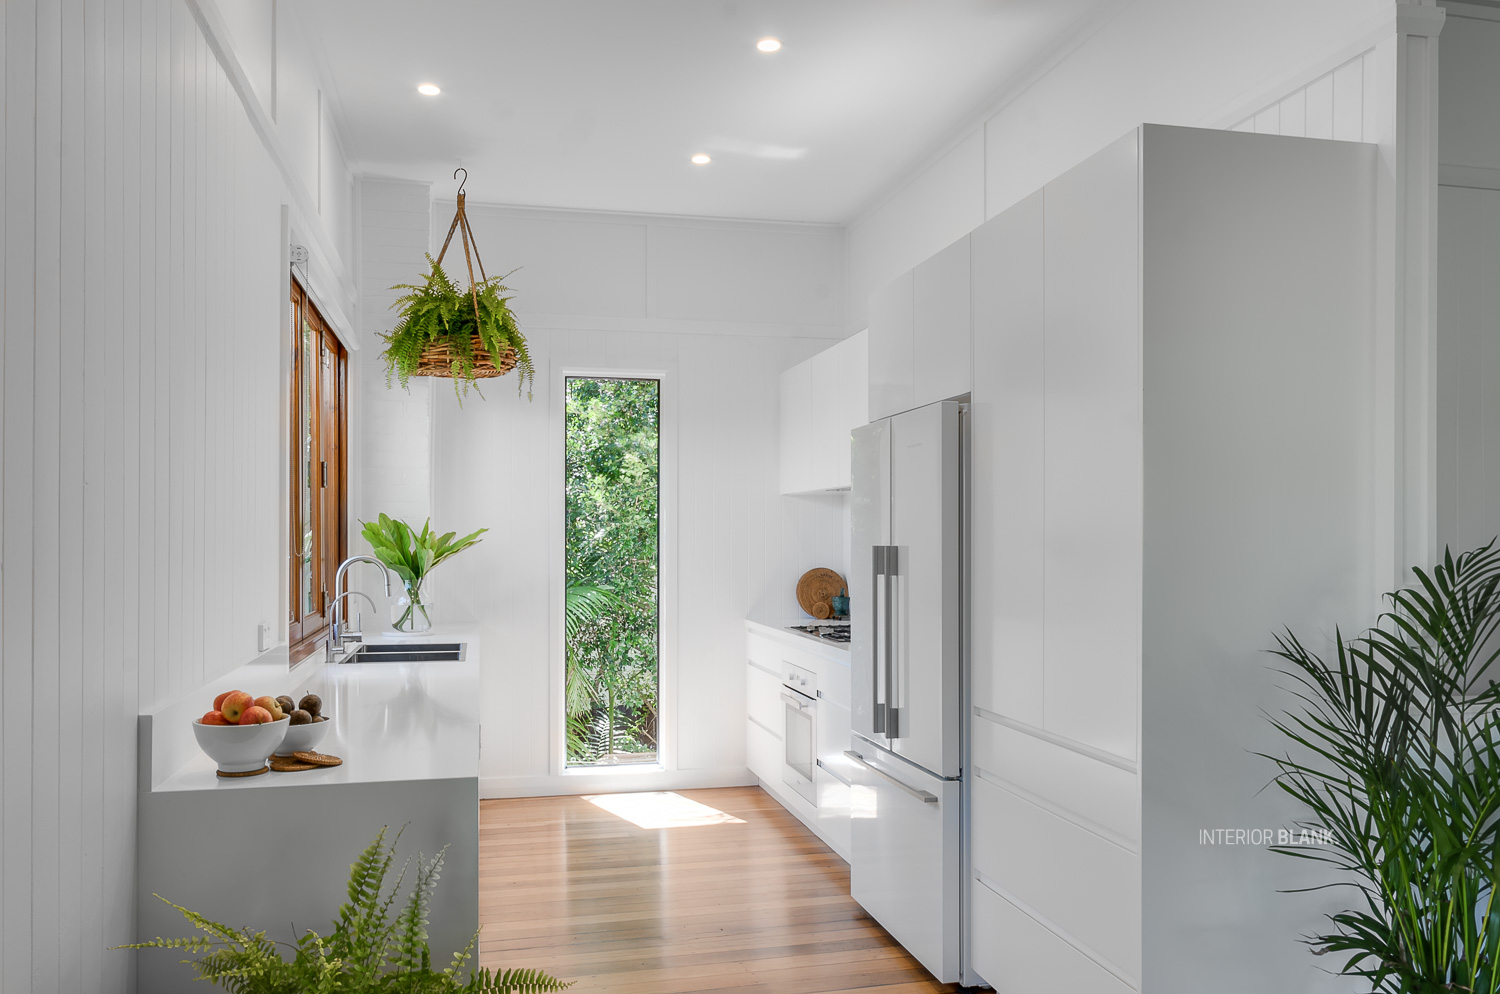 Kitchen renovations Bangalow_White satin 2pac cabinets_fingerpull handles_Quantum Quartz Stone benchtops_VJ wall Panelling_white kitchens